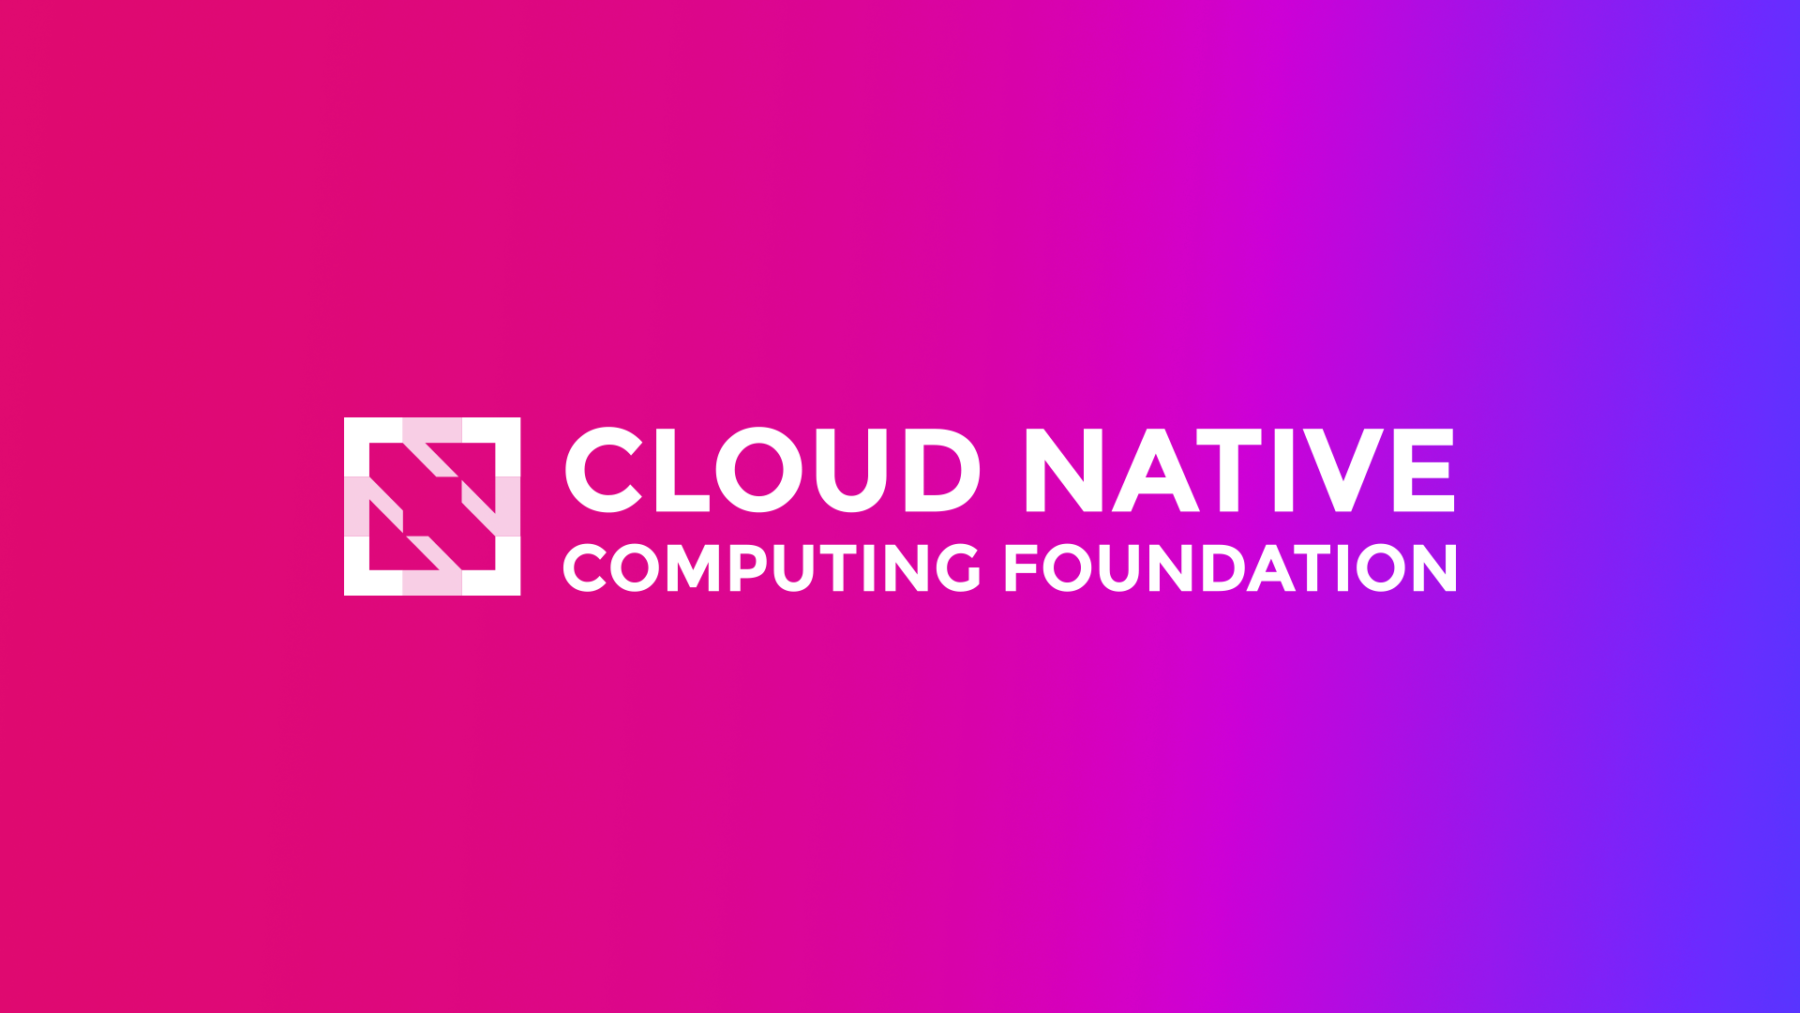 Cloud Native Computing Foundation (CNCF)